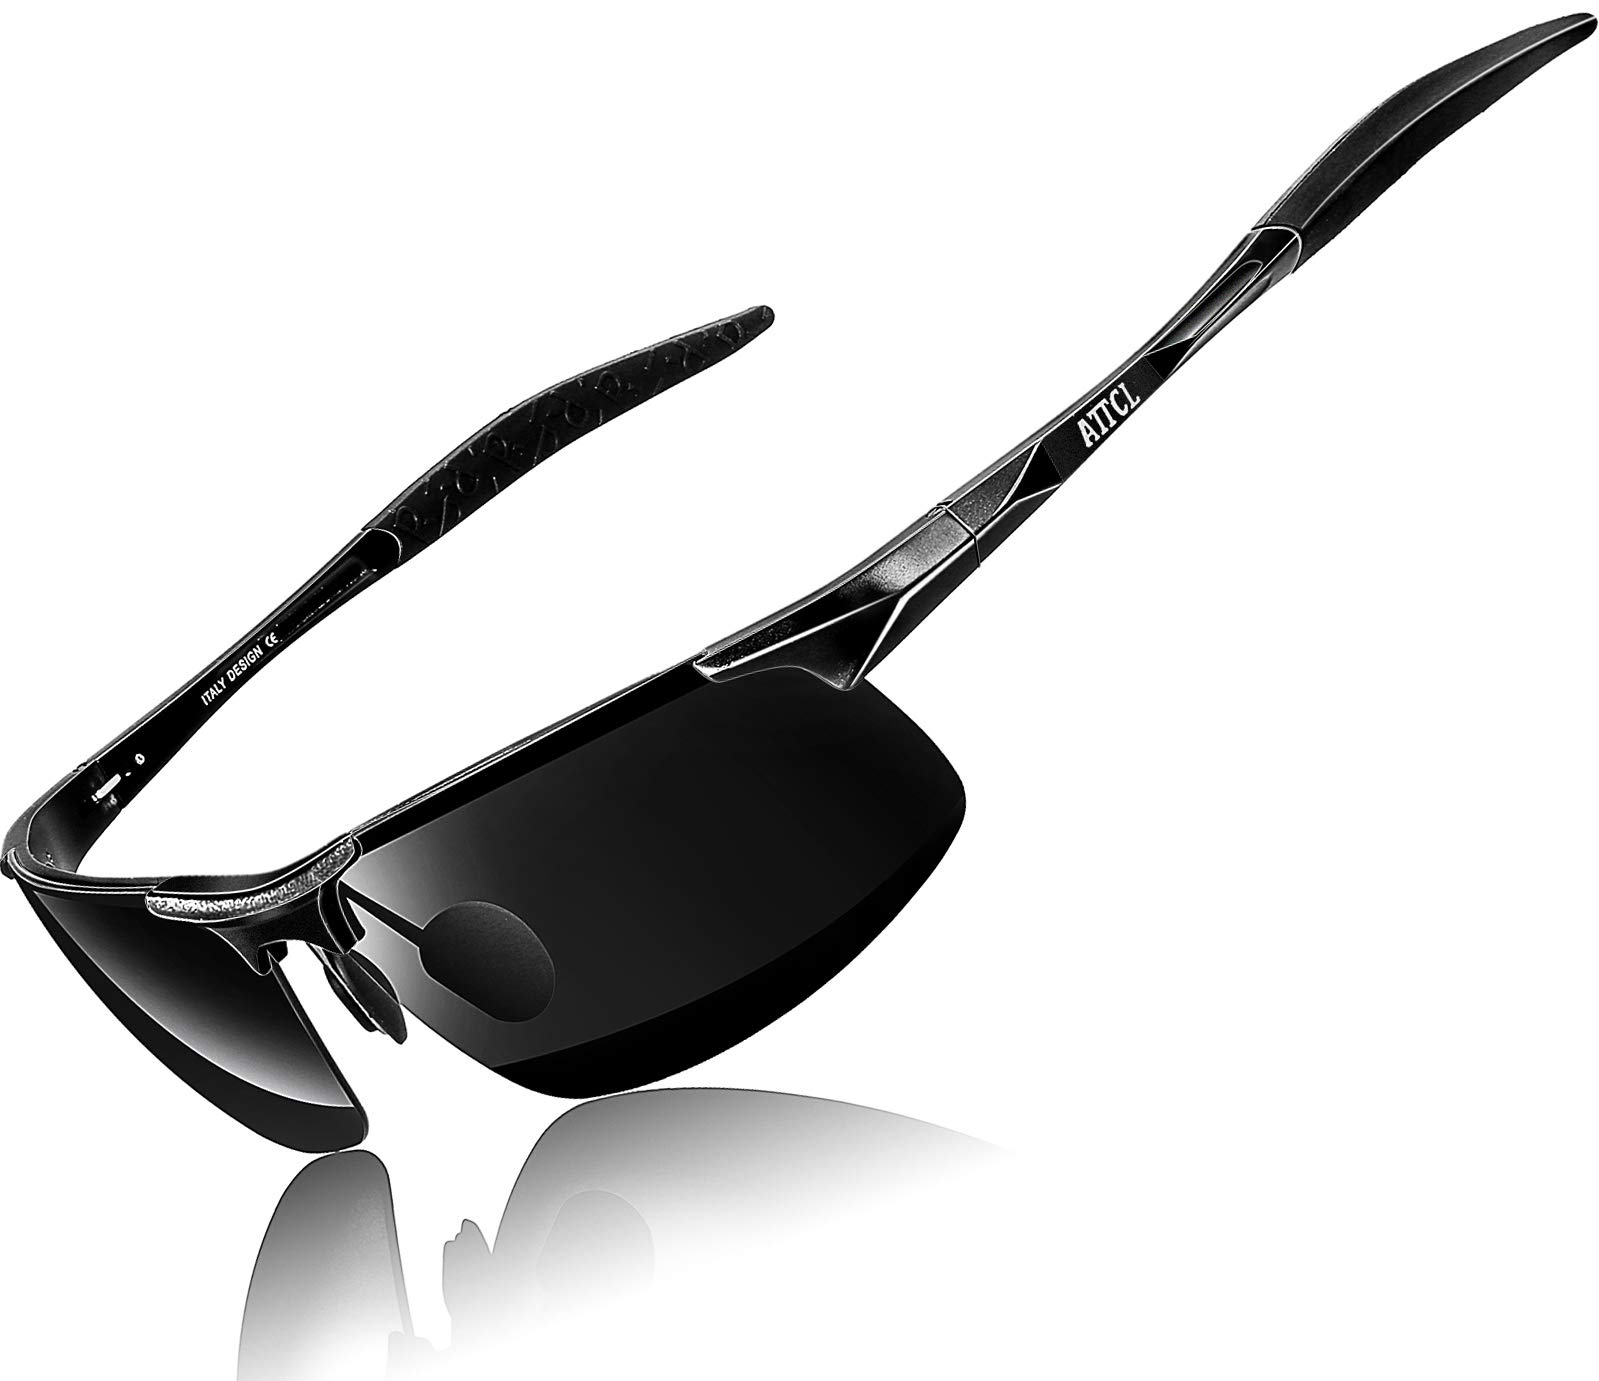 ATTCL-Mens-Fashion-Driving-Polarized-Sports-Sunglasses-for-Men-Al-Mg-Metal-Frame-Ultra-Light